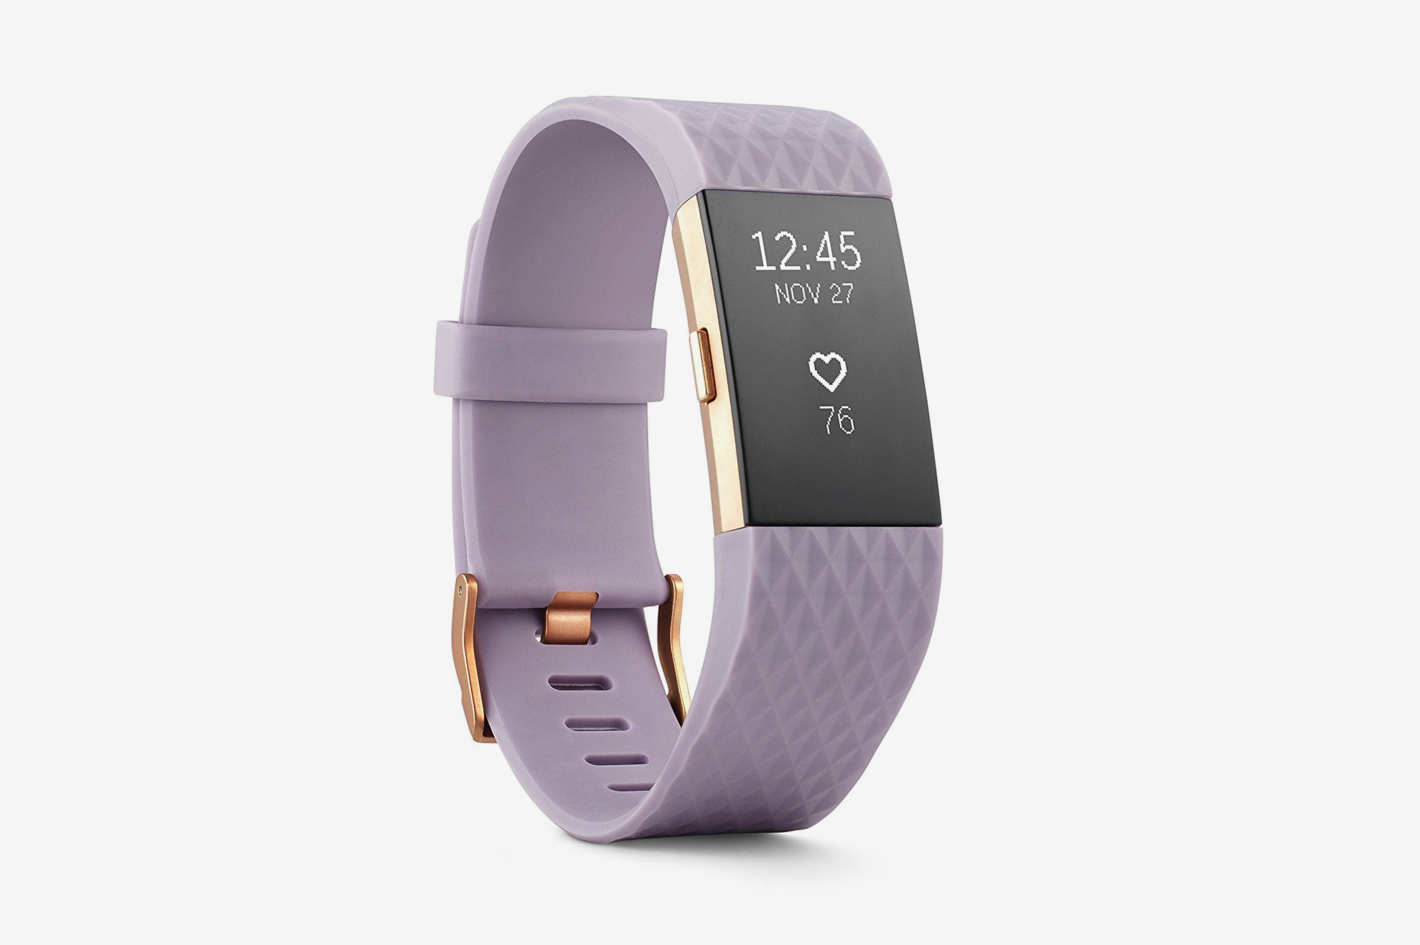 Fitbit Charge 2 Heart Rate + Fitness Wristband, Special Edition, Lavender Rose Gold